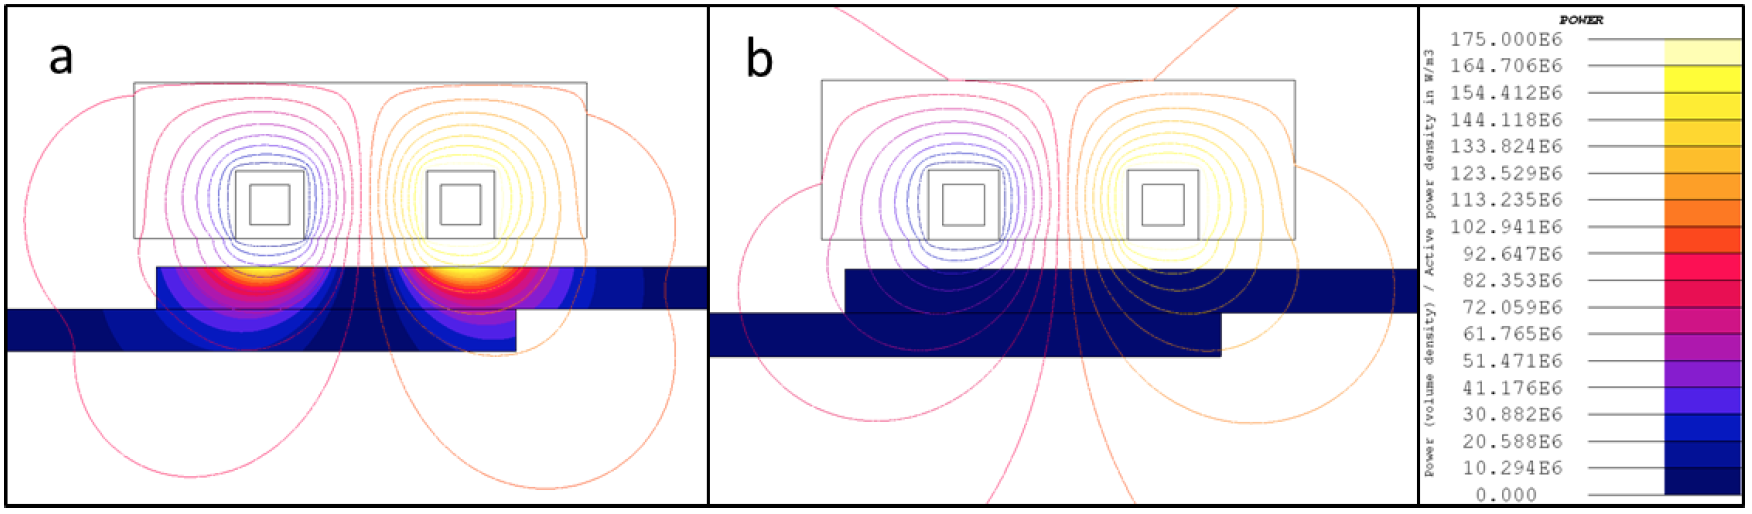 Fluxtrol - Induction Process and Coil Design for Welding of Carbon Fiber Reinforced Thermoplastics - Figure 6: Power density and magnetic field lines for resistivity in parallel direction (a) and perpendicular direction (b) at 2 MHz.